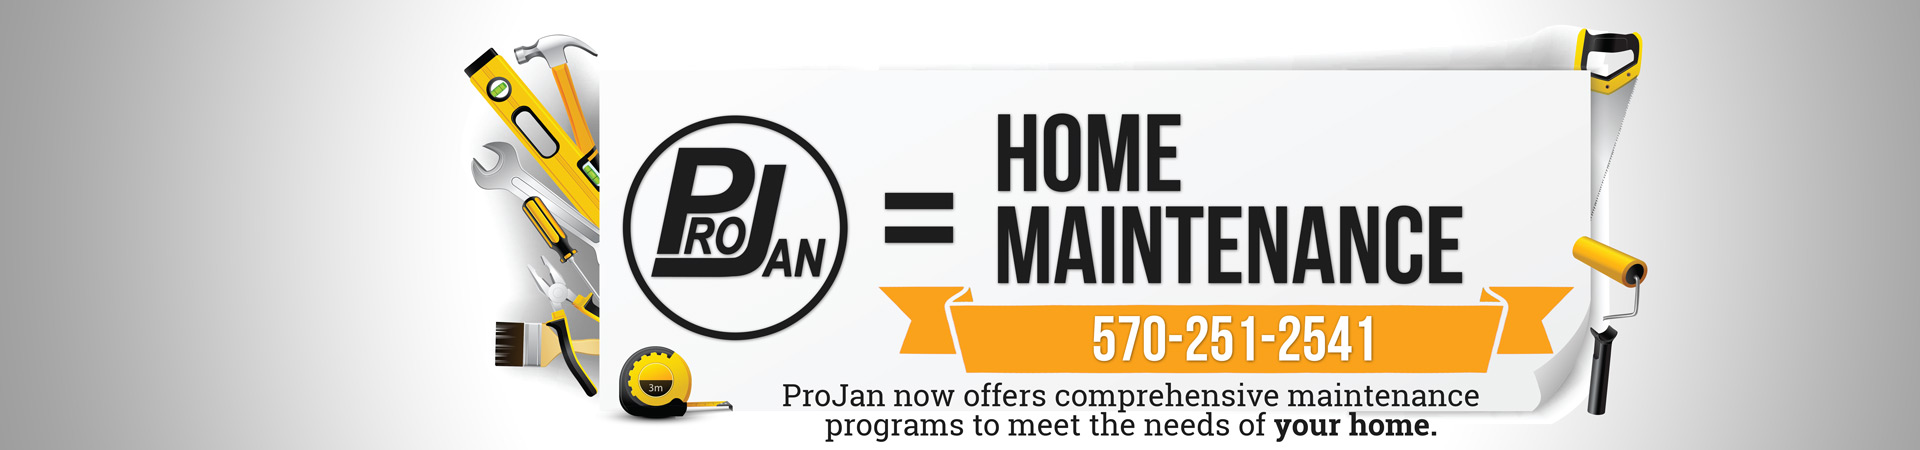 ProJan Home Maintenance Program